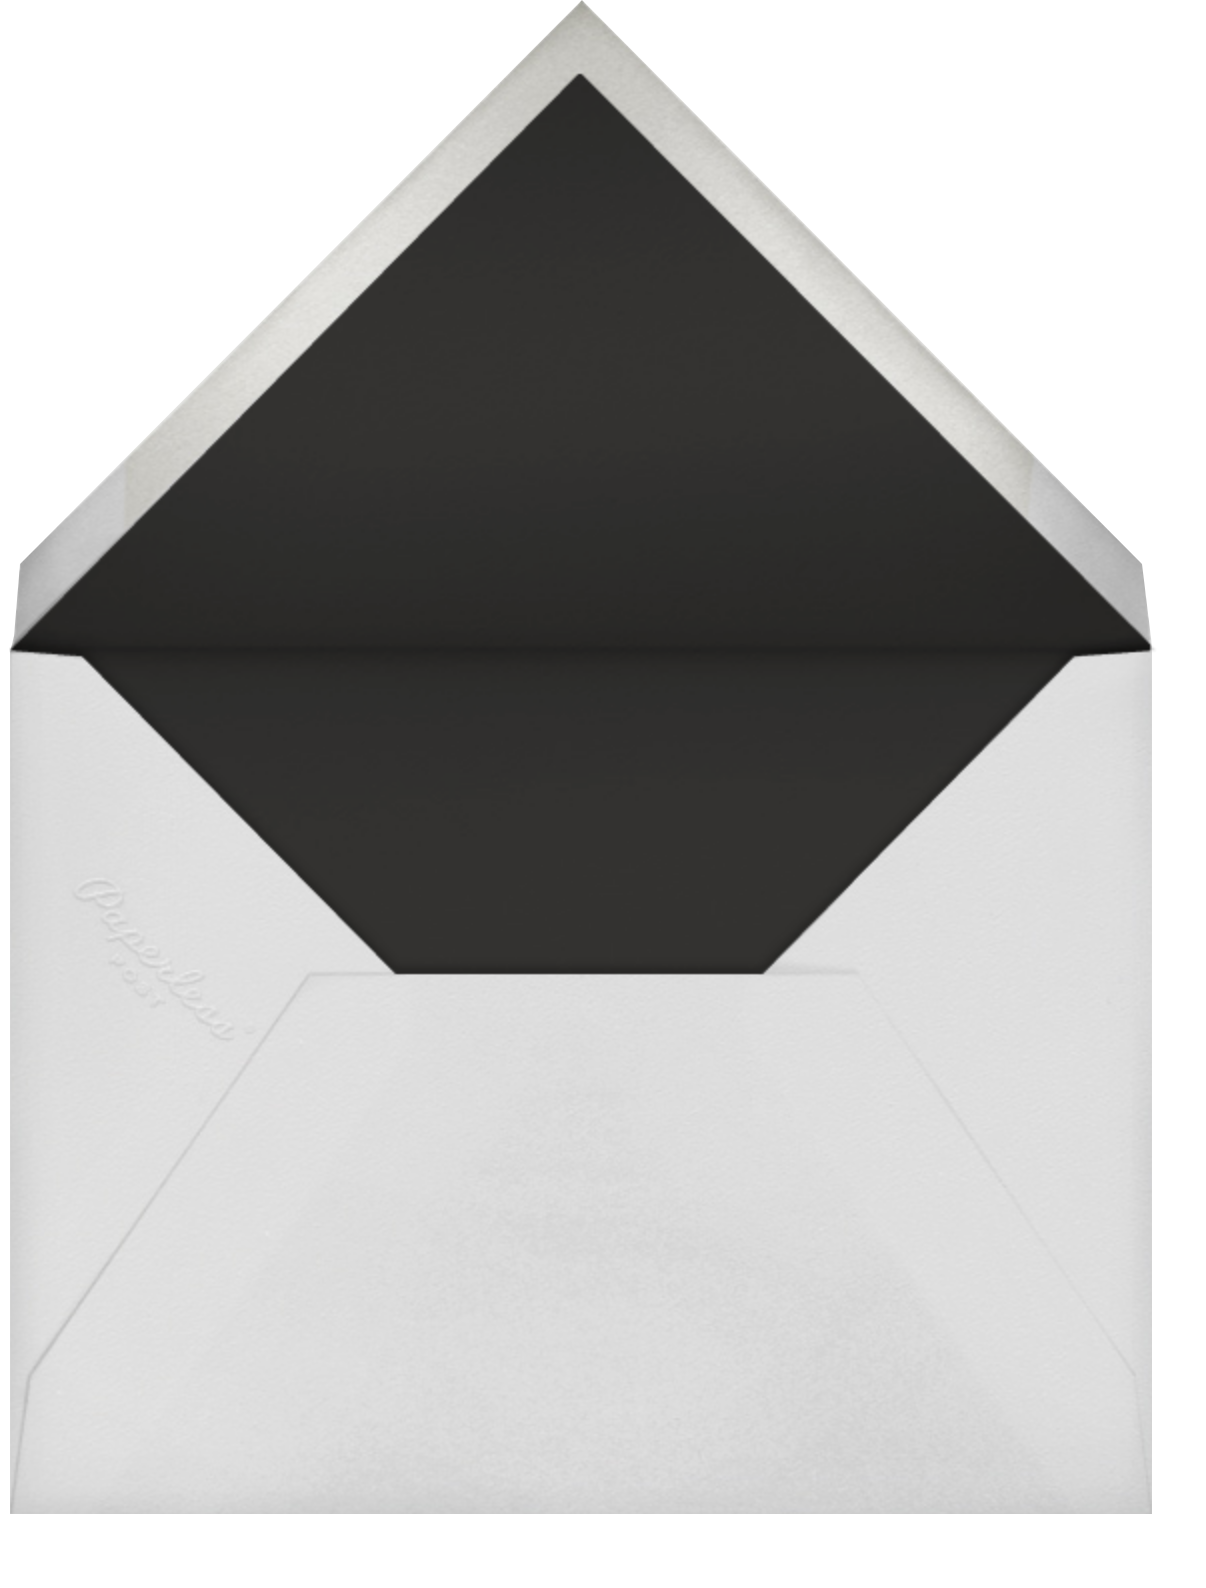 Perfect Portrait - Gold - Paperless Post - Envelope